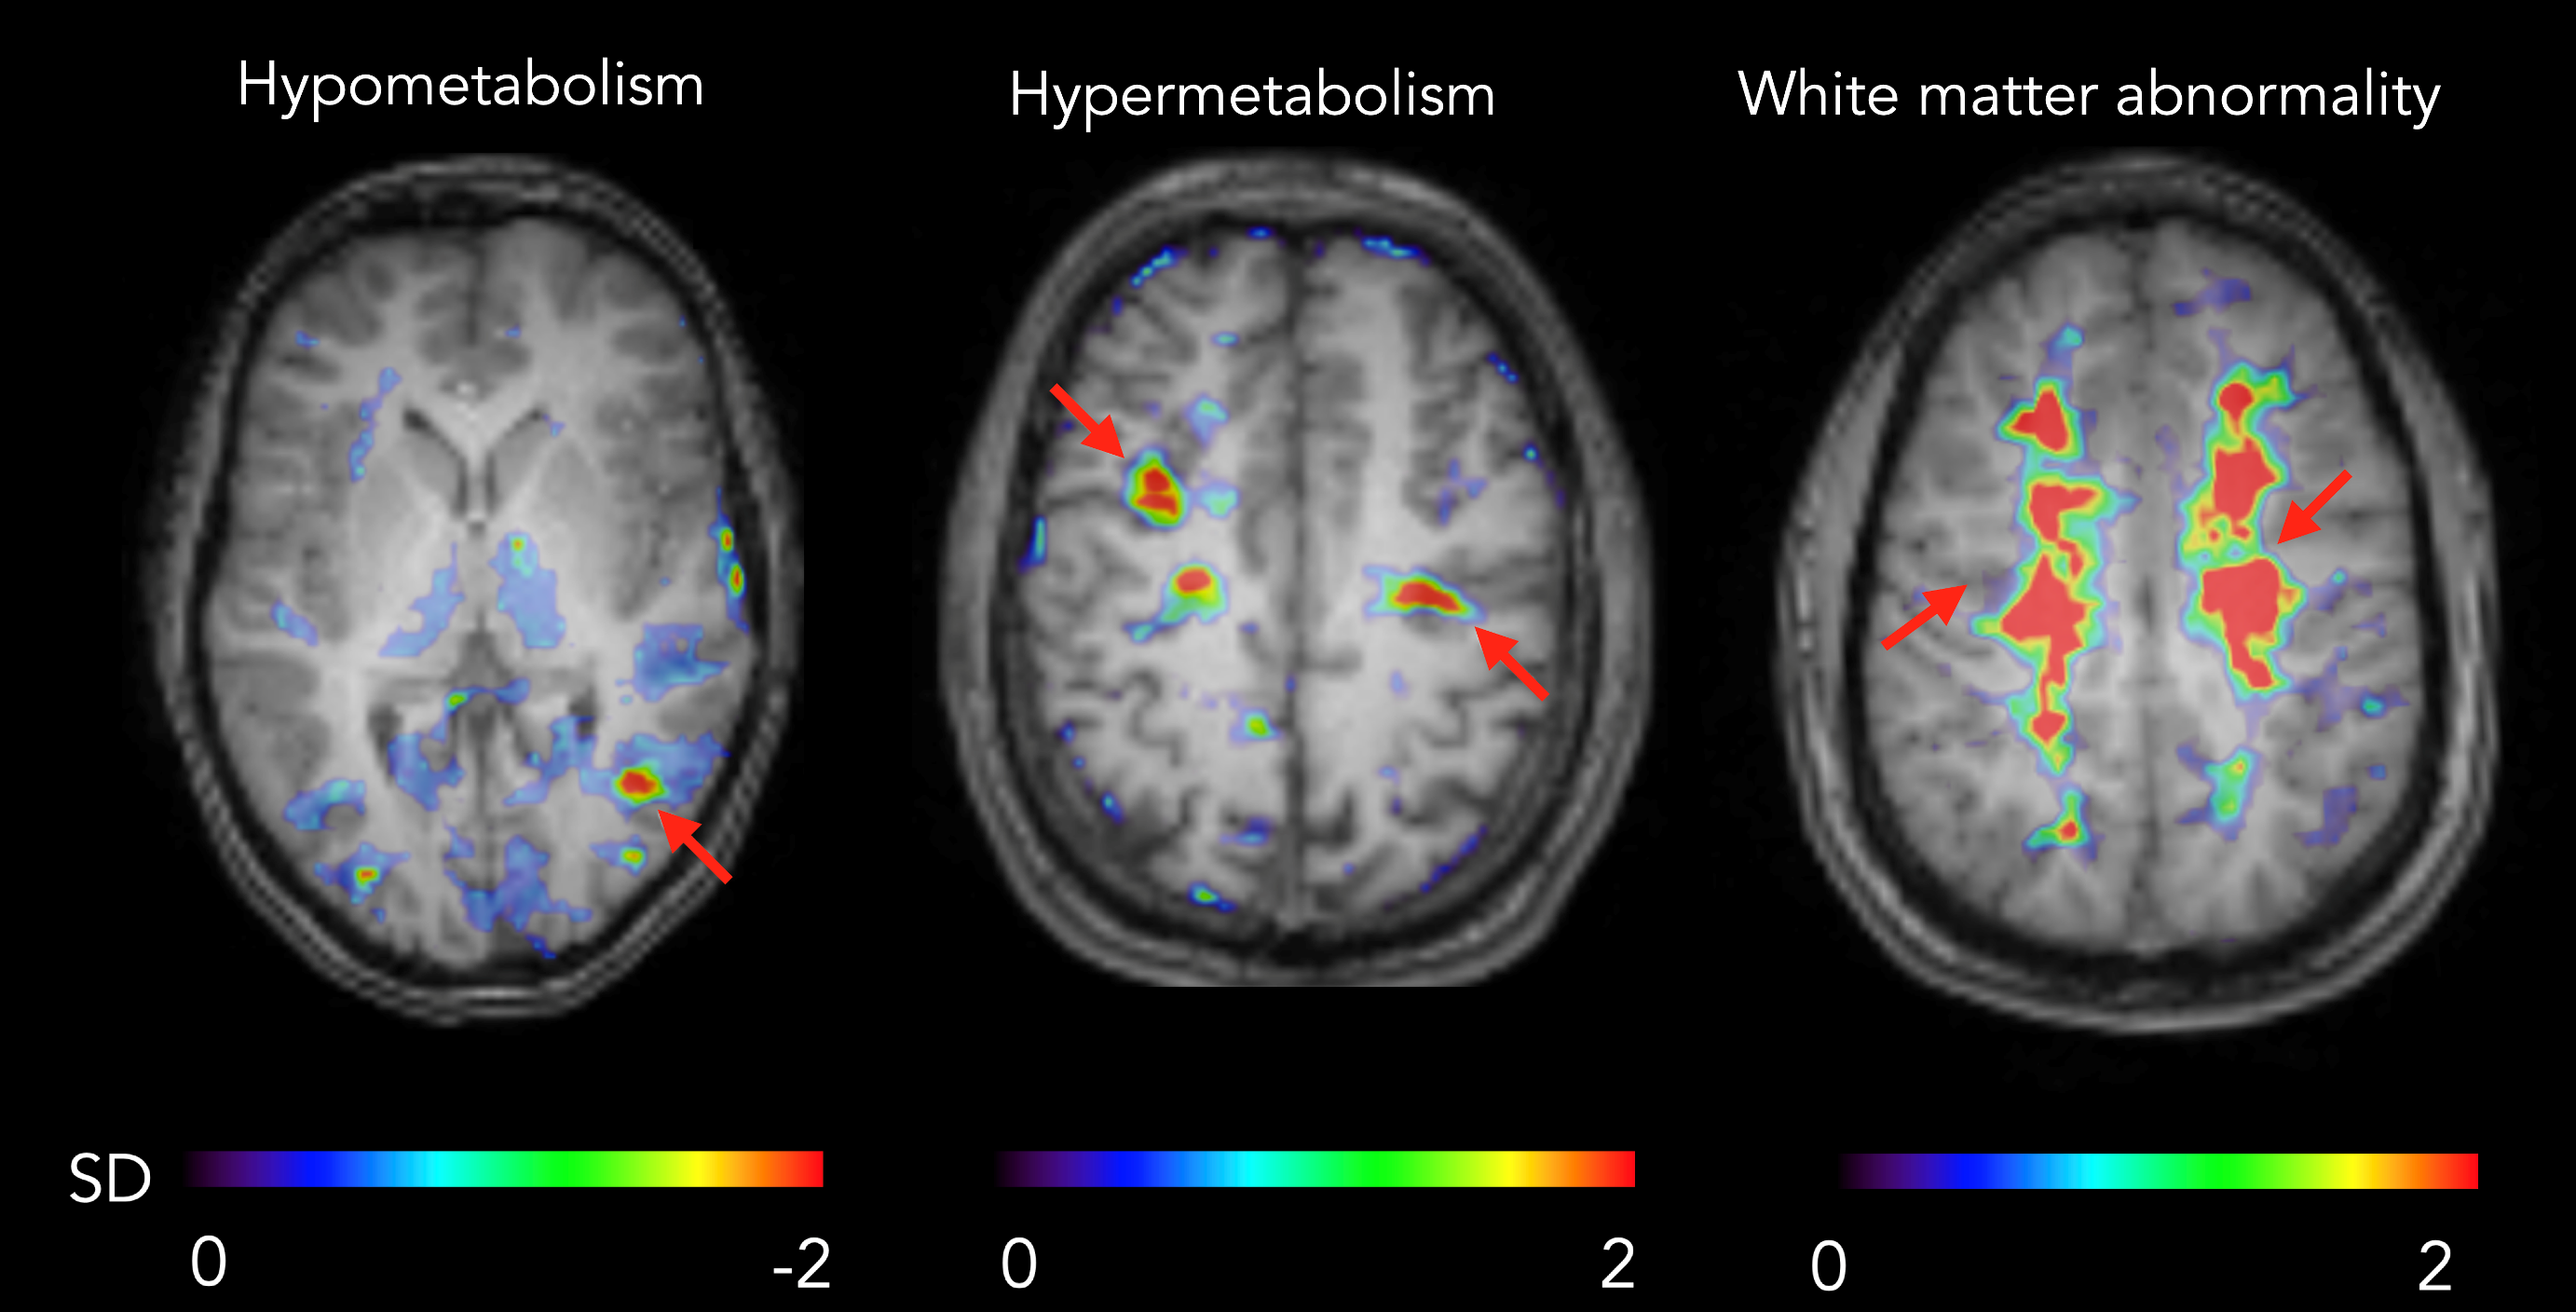 The image shows brain scans of hypometabolic, hypermetabolic and bilateral abnormal zones overlaid with a corresponding MR image.